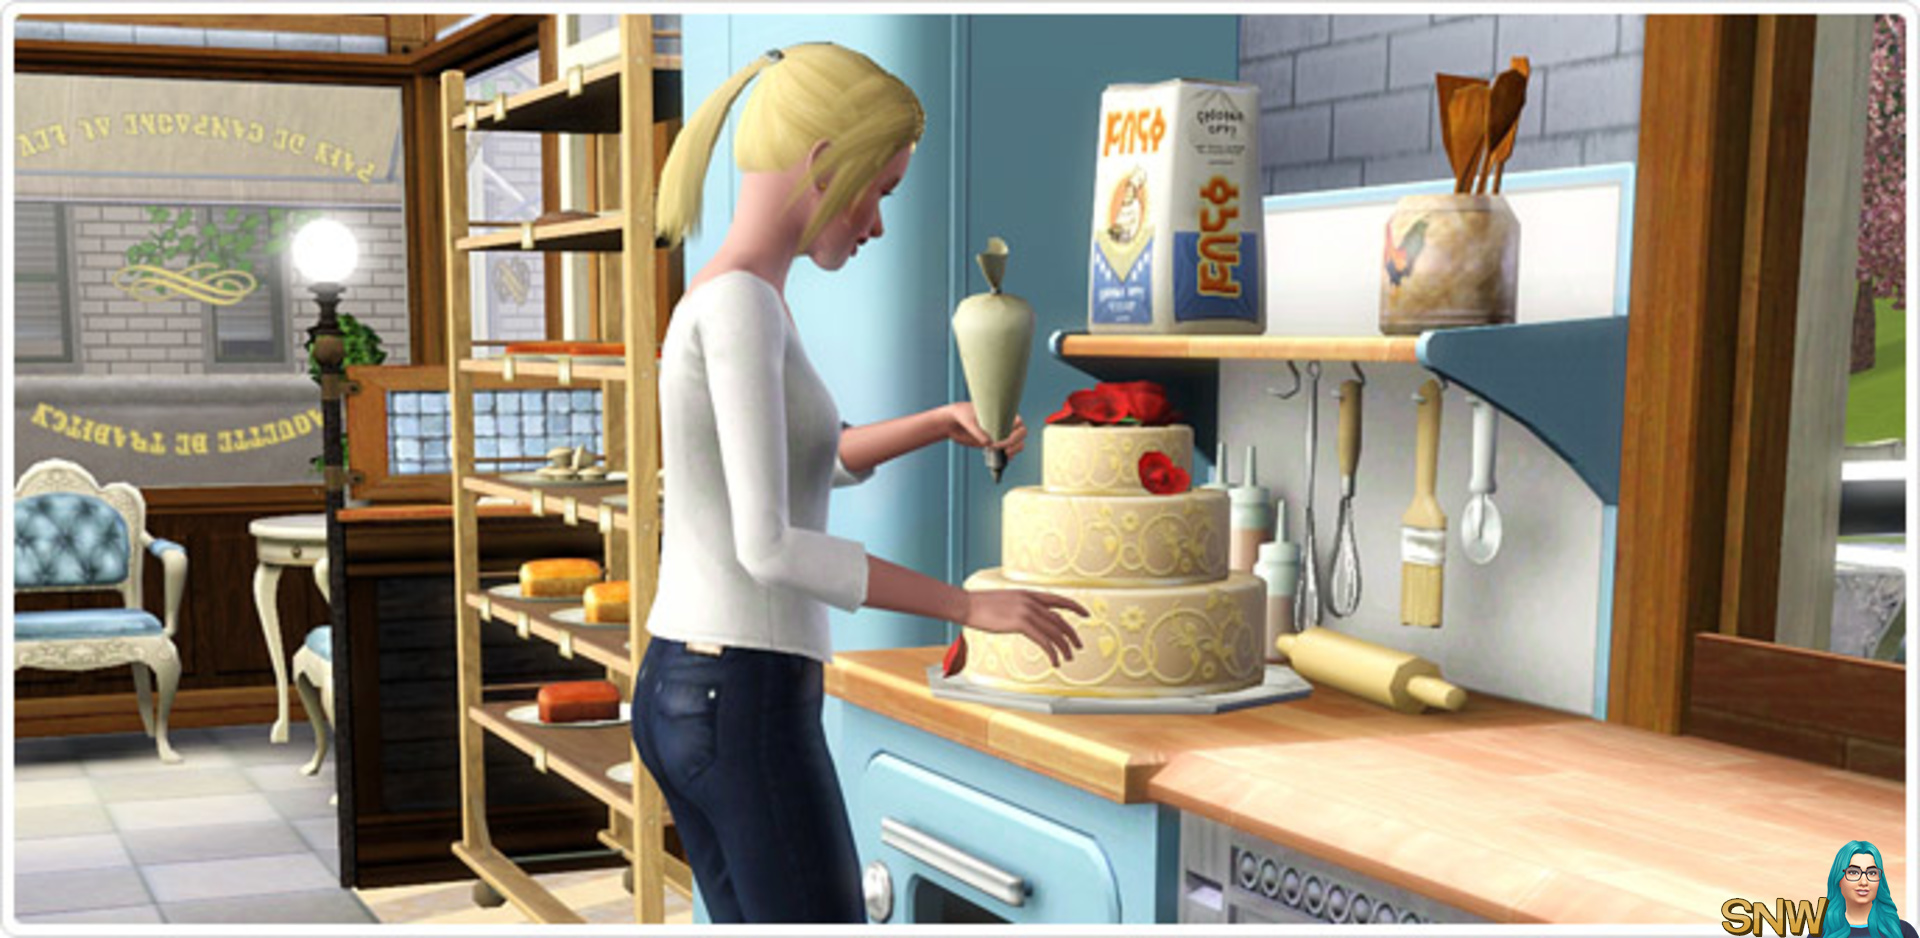 bakers station sims 3 free download